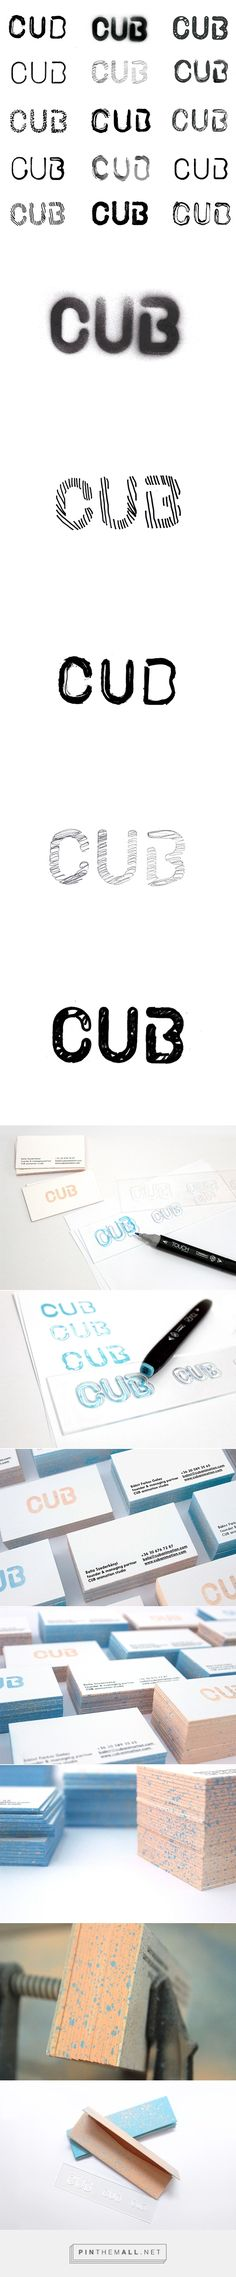 CUB animation studio on Behance // Using an acrylic stencil, the designers have filled in the logo in various styles and then made lumpy frame animati. - a grouped images picture - Movie, Animation Studio, Filmmaking Trailer Frame By Frame Animation, Picture Movie, Icon Font, Cubs, Filmmaking, Stencils, Branding Design, Designers, Behance